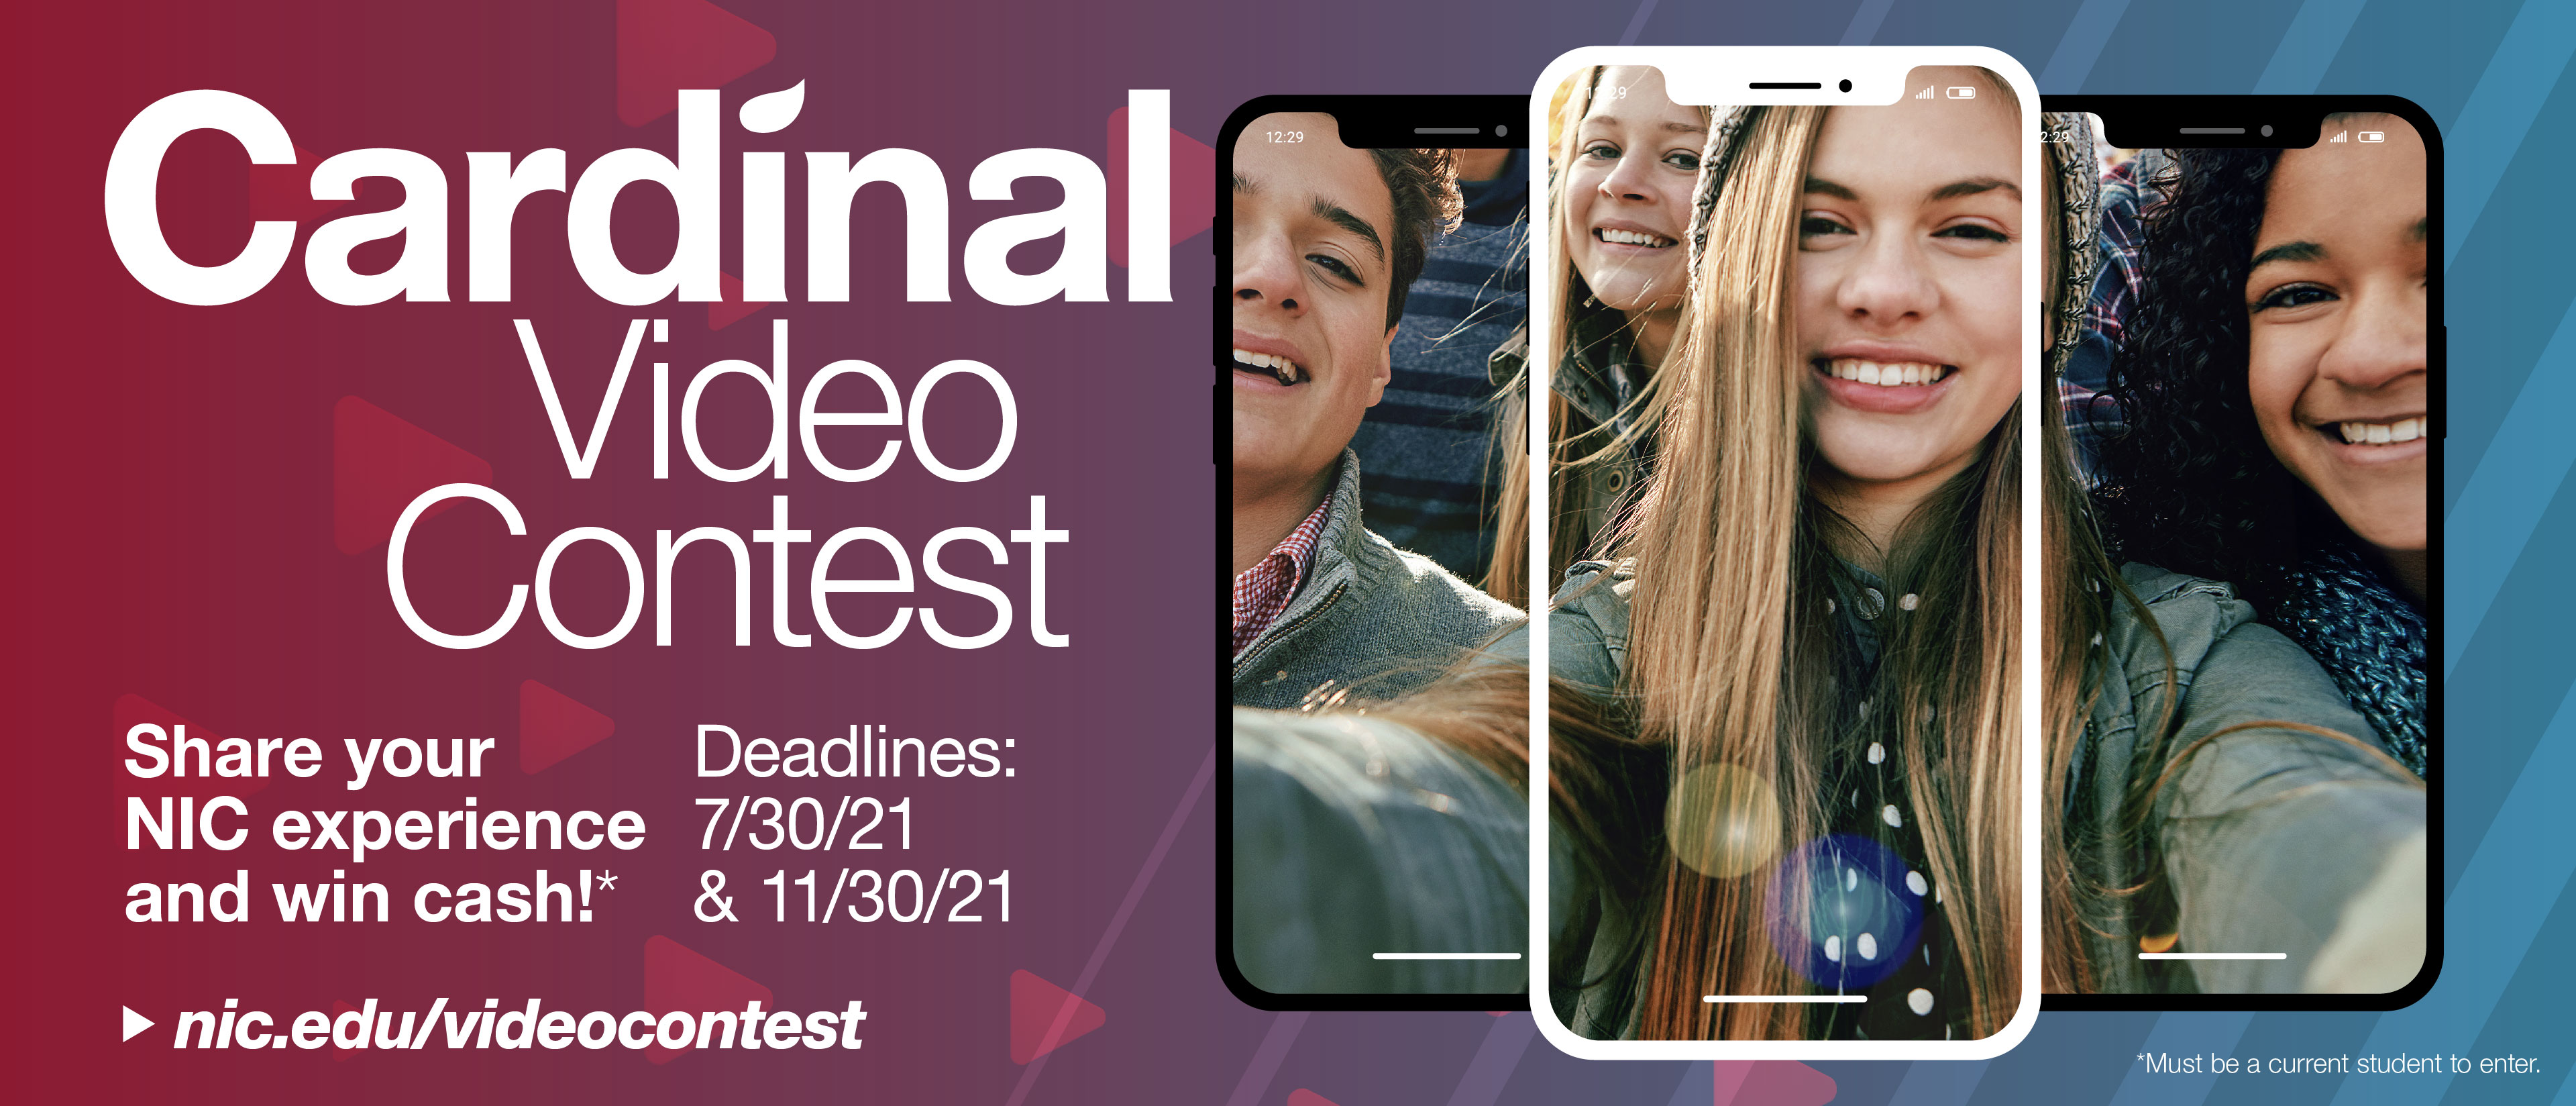 Cardinal Video Contest, Chare your experience and win cash!* Deadlines: 7/30/21 & 11/30/21, nic.edu/videocontest, *must be a current student to enter. Four students taking seflies on iphones.